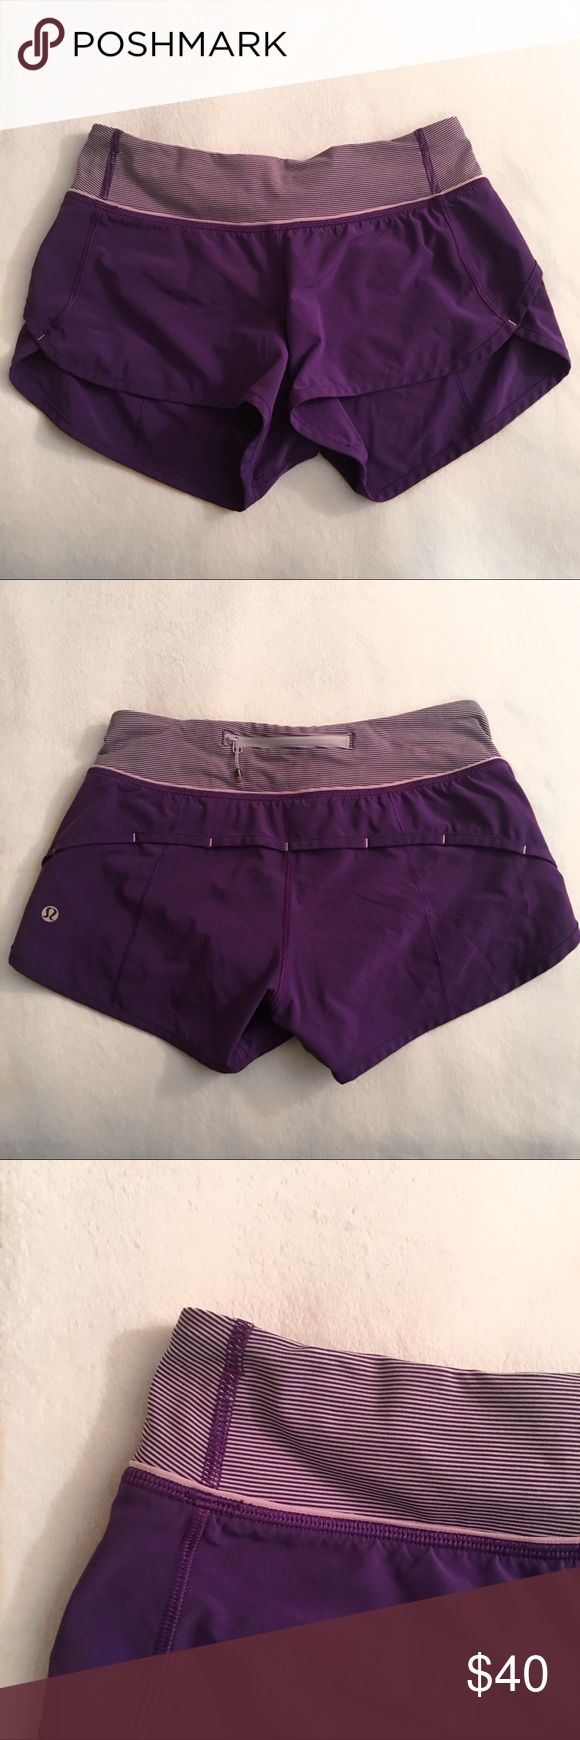 Purple Lululemon Speed Shorts In great condition, no flaws. Super cute and comfy. Perfect to workout in or wear casually. For size reference this is an XXS (which is a size 2 in lulu). No trades. lululemon athletica Shorts